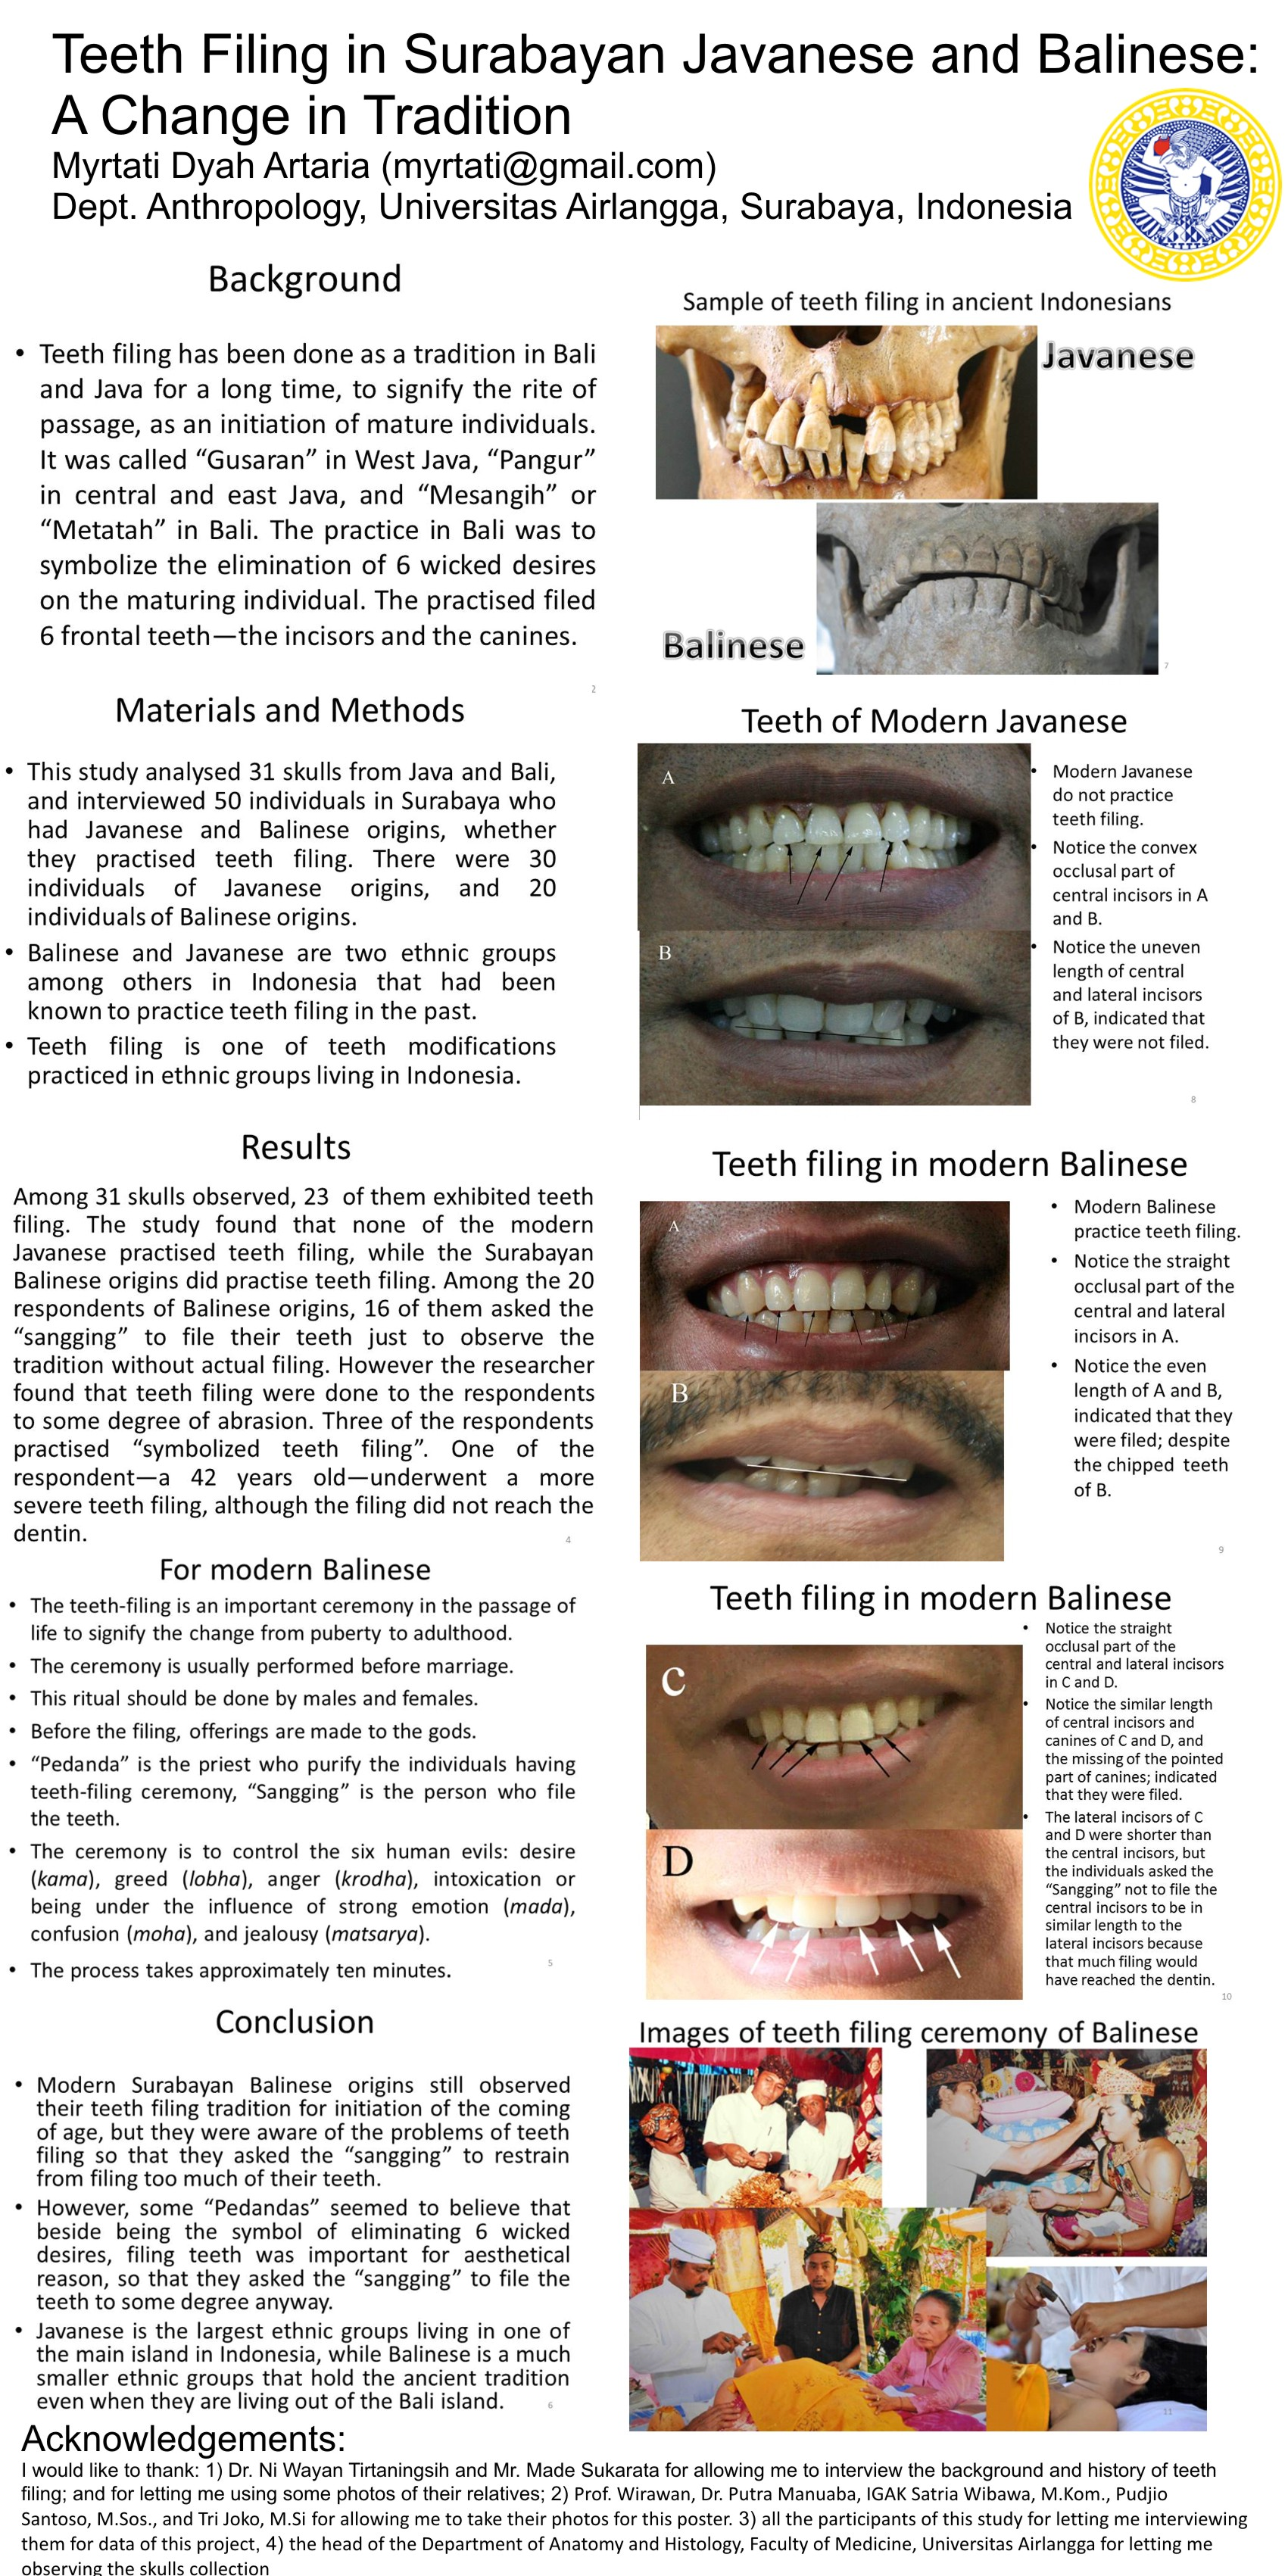 Filing Canine Teeth Before And After : filing, canine, teeth, before, after, Teeth, Filing, Surabayan, Javanese, Balinese:, Change, Tradition